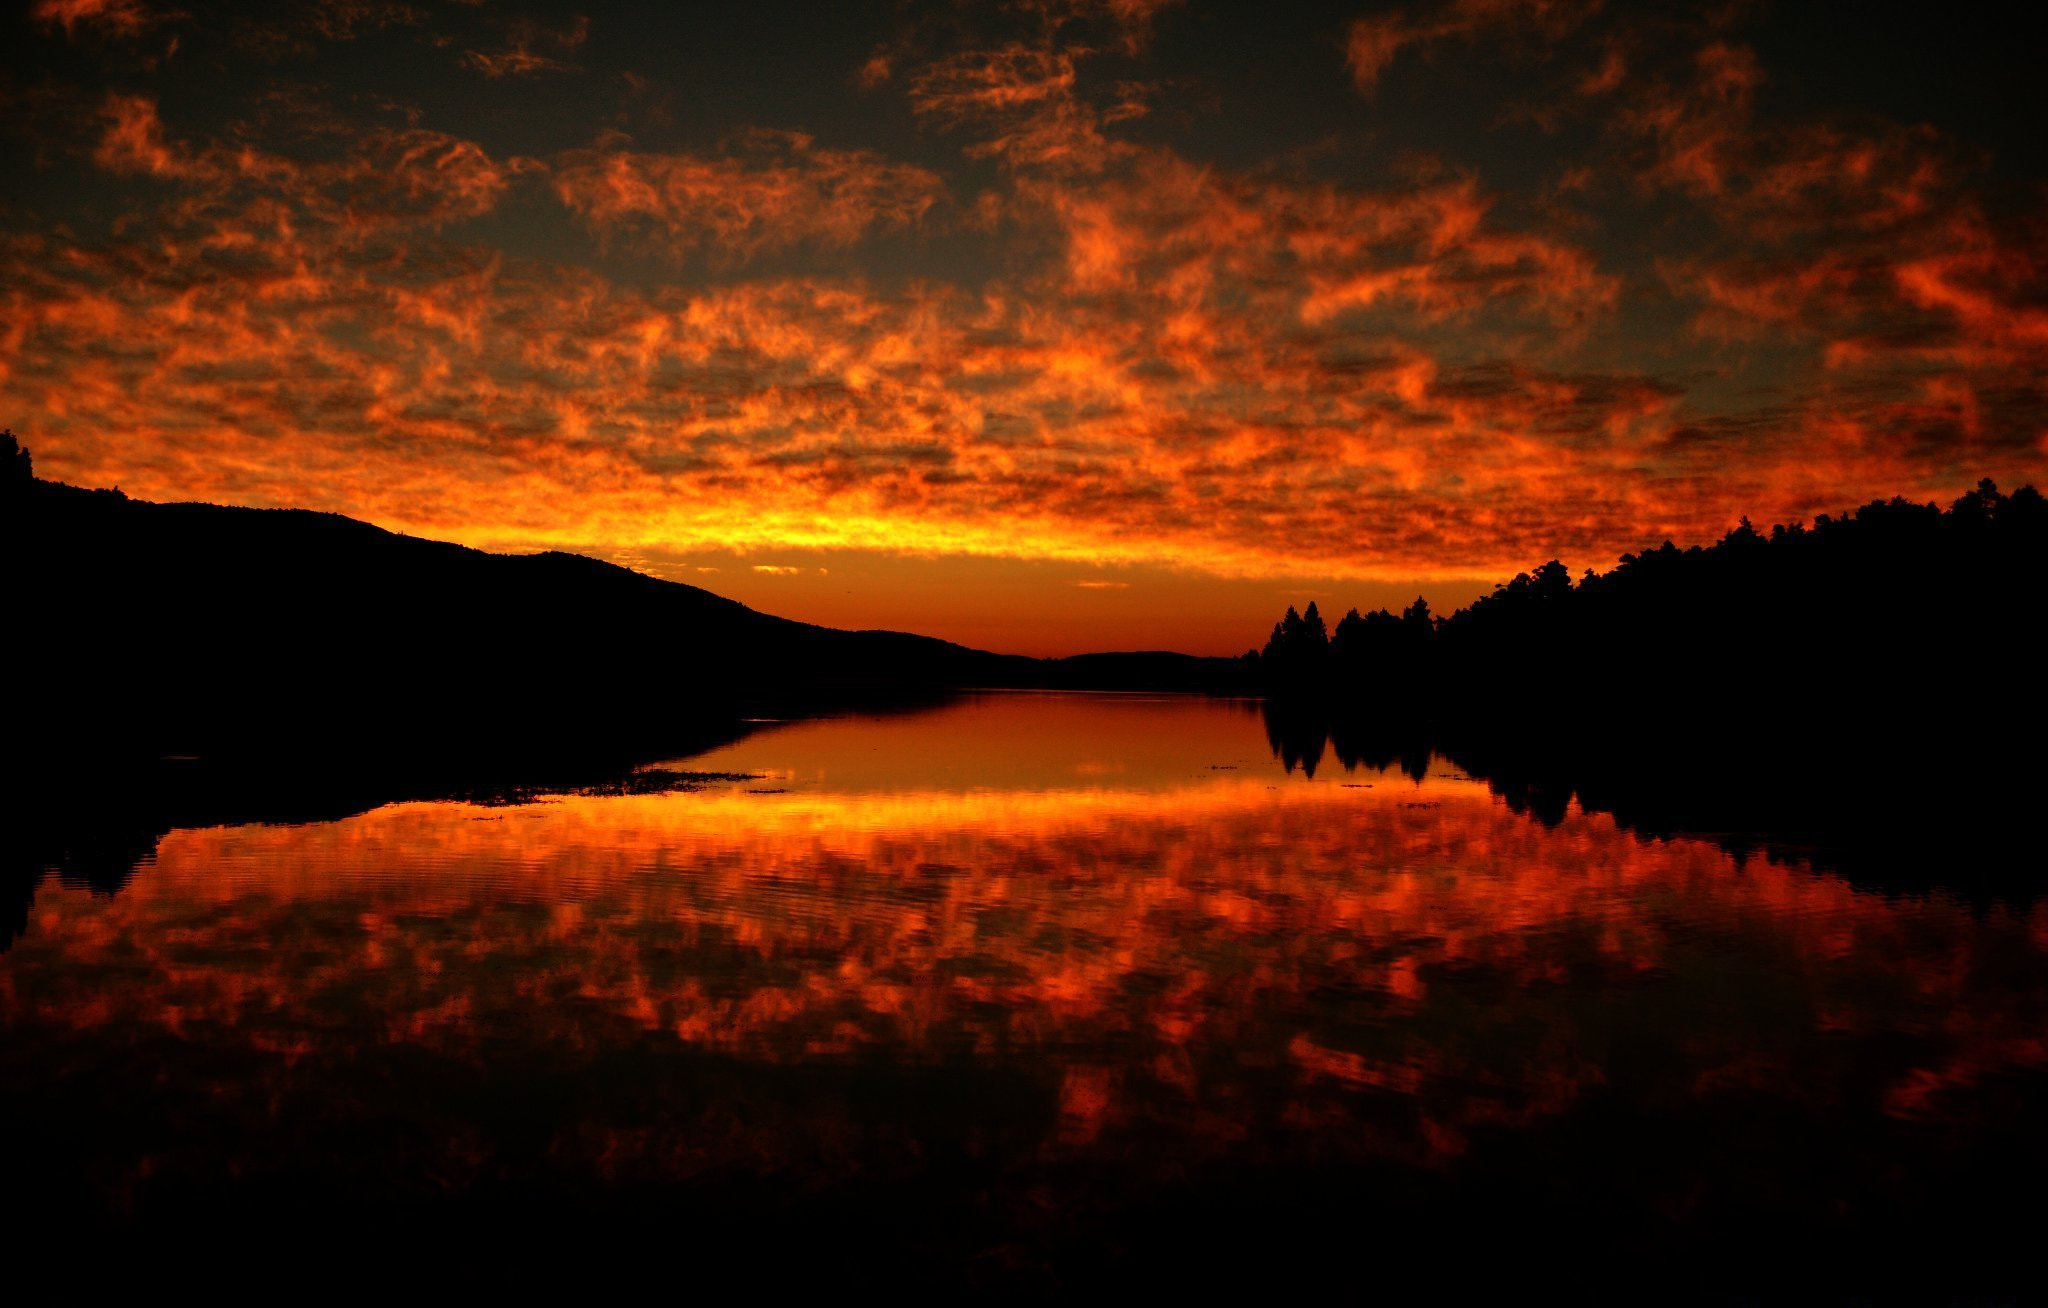 Photograph A new day by Danny Enger on 500px